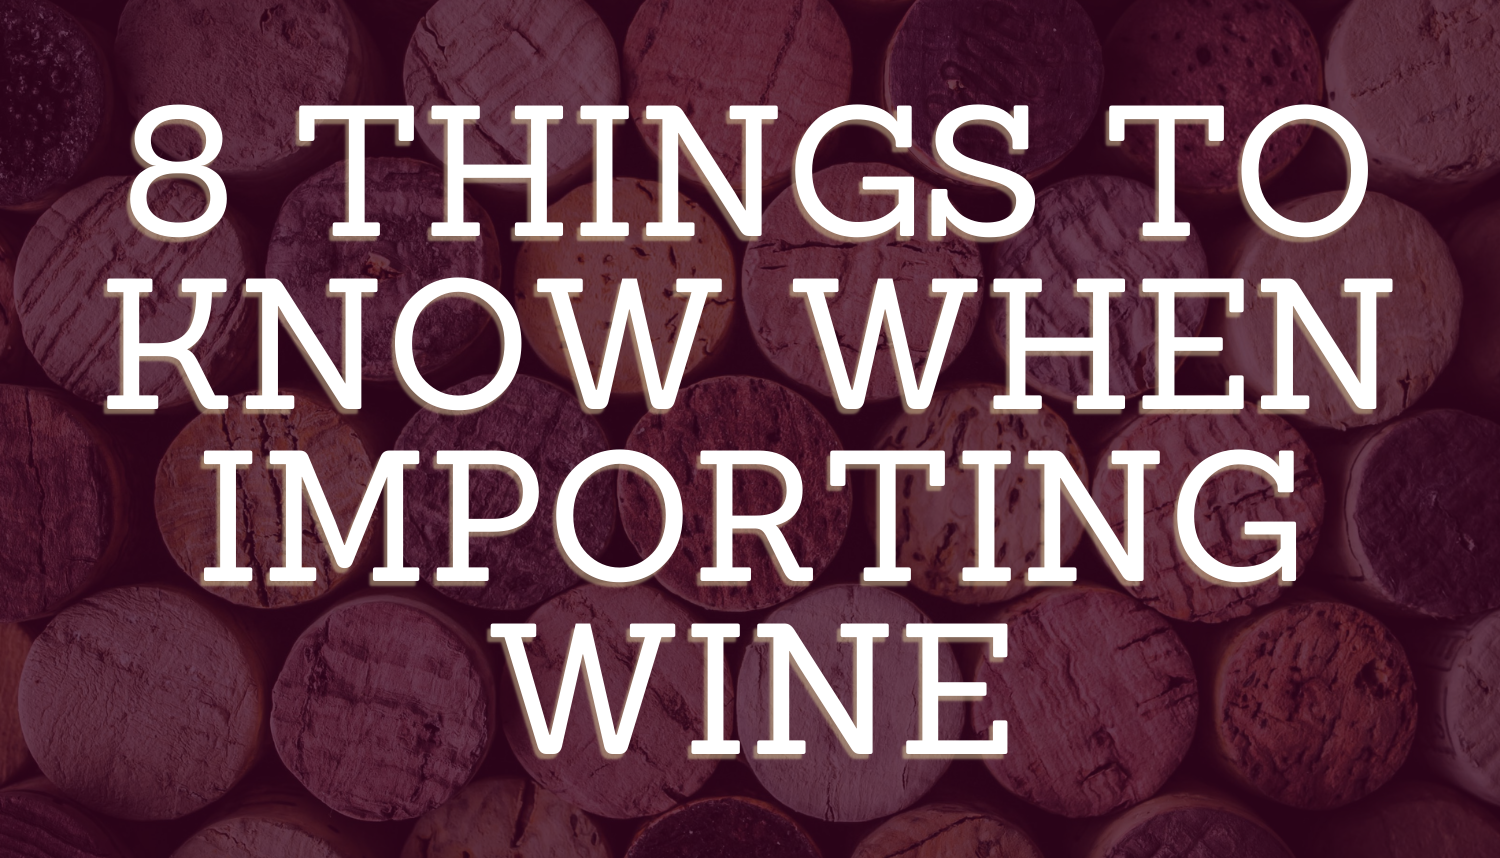 8 Things to Know When Importing Wine Into the U.S.